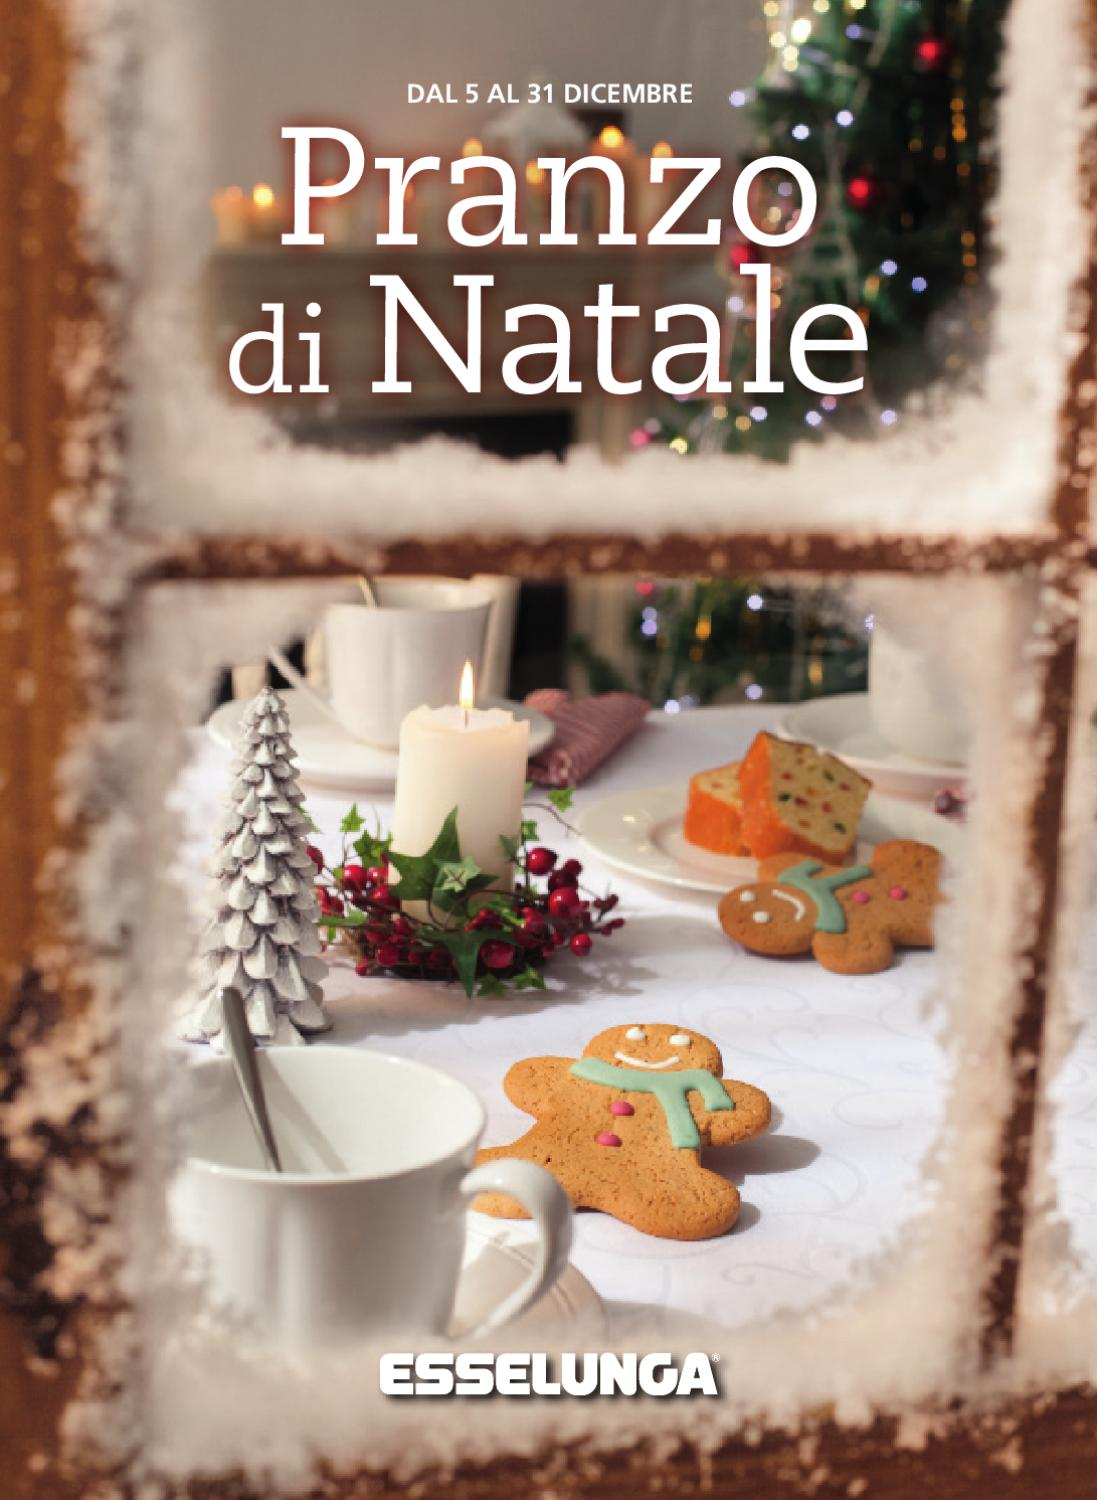 Antipasti Di Natale Esselunga.Catalogo Pranzo Di Natale By Klikkapromo Spa Issuu